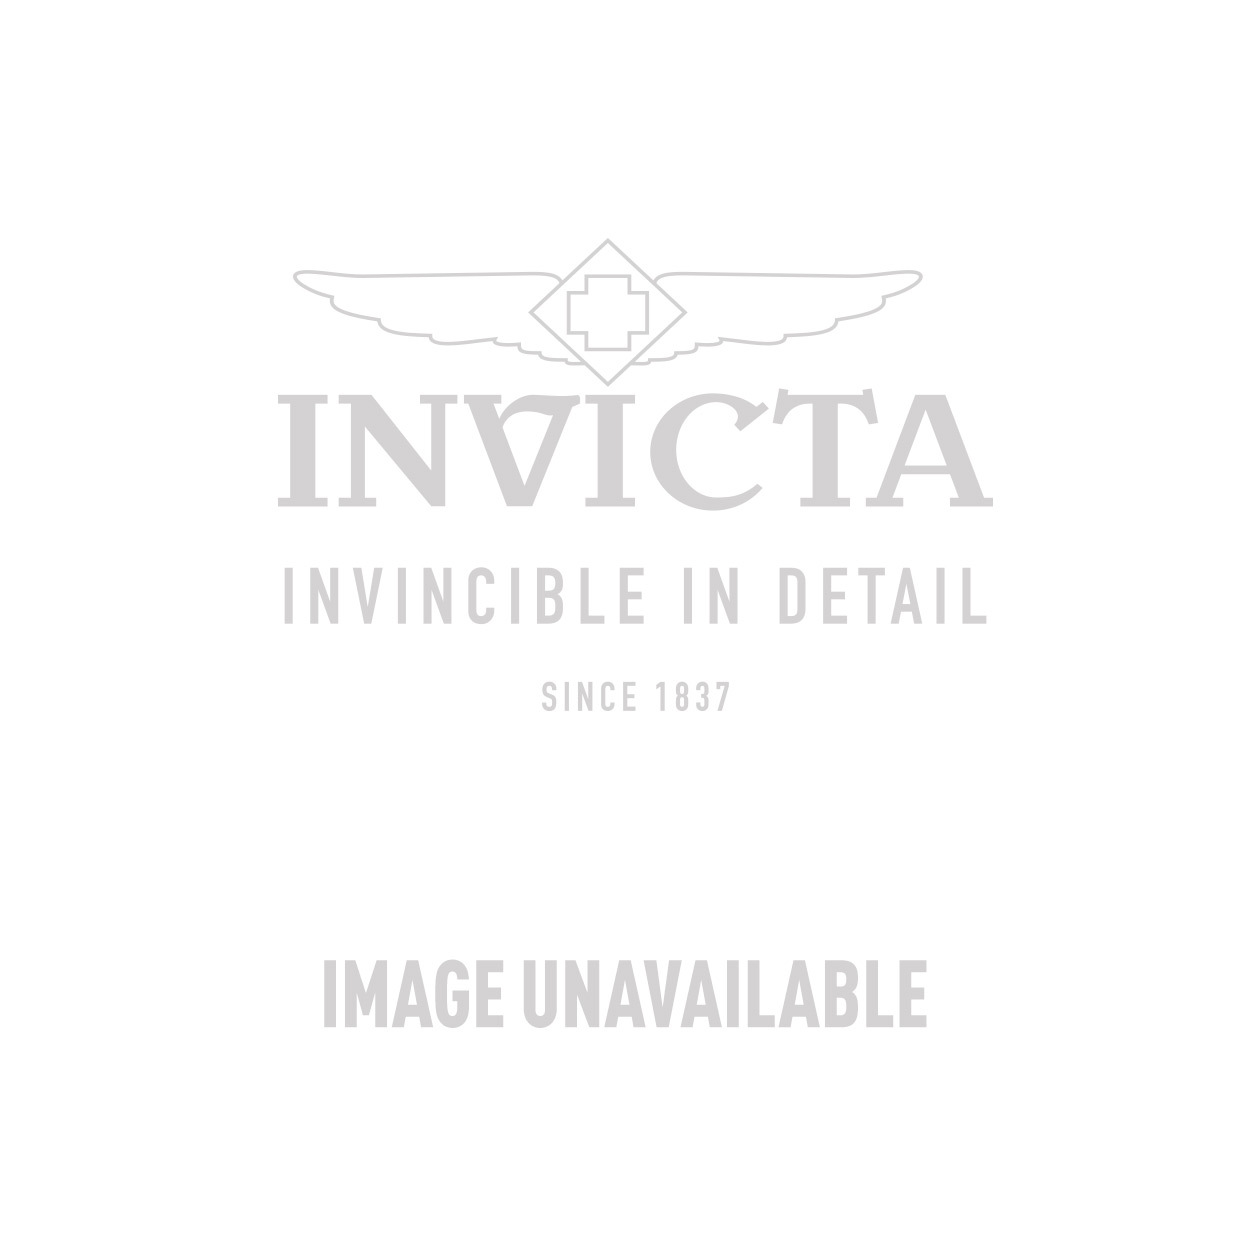 Invicta I-Force Quartz Watch - Stainless Steel case - Model 11520